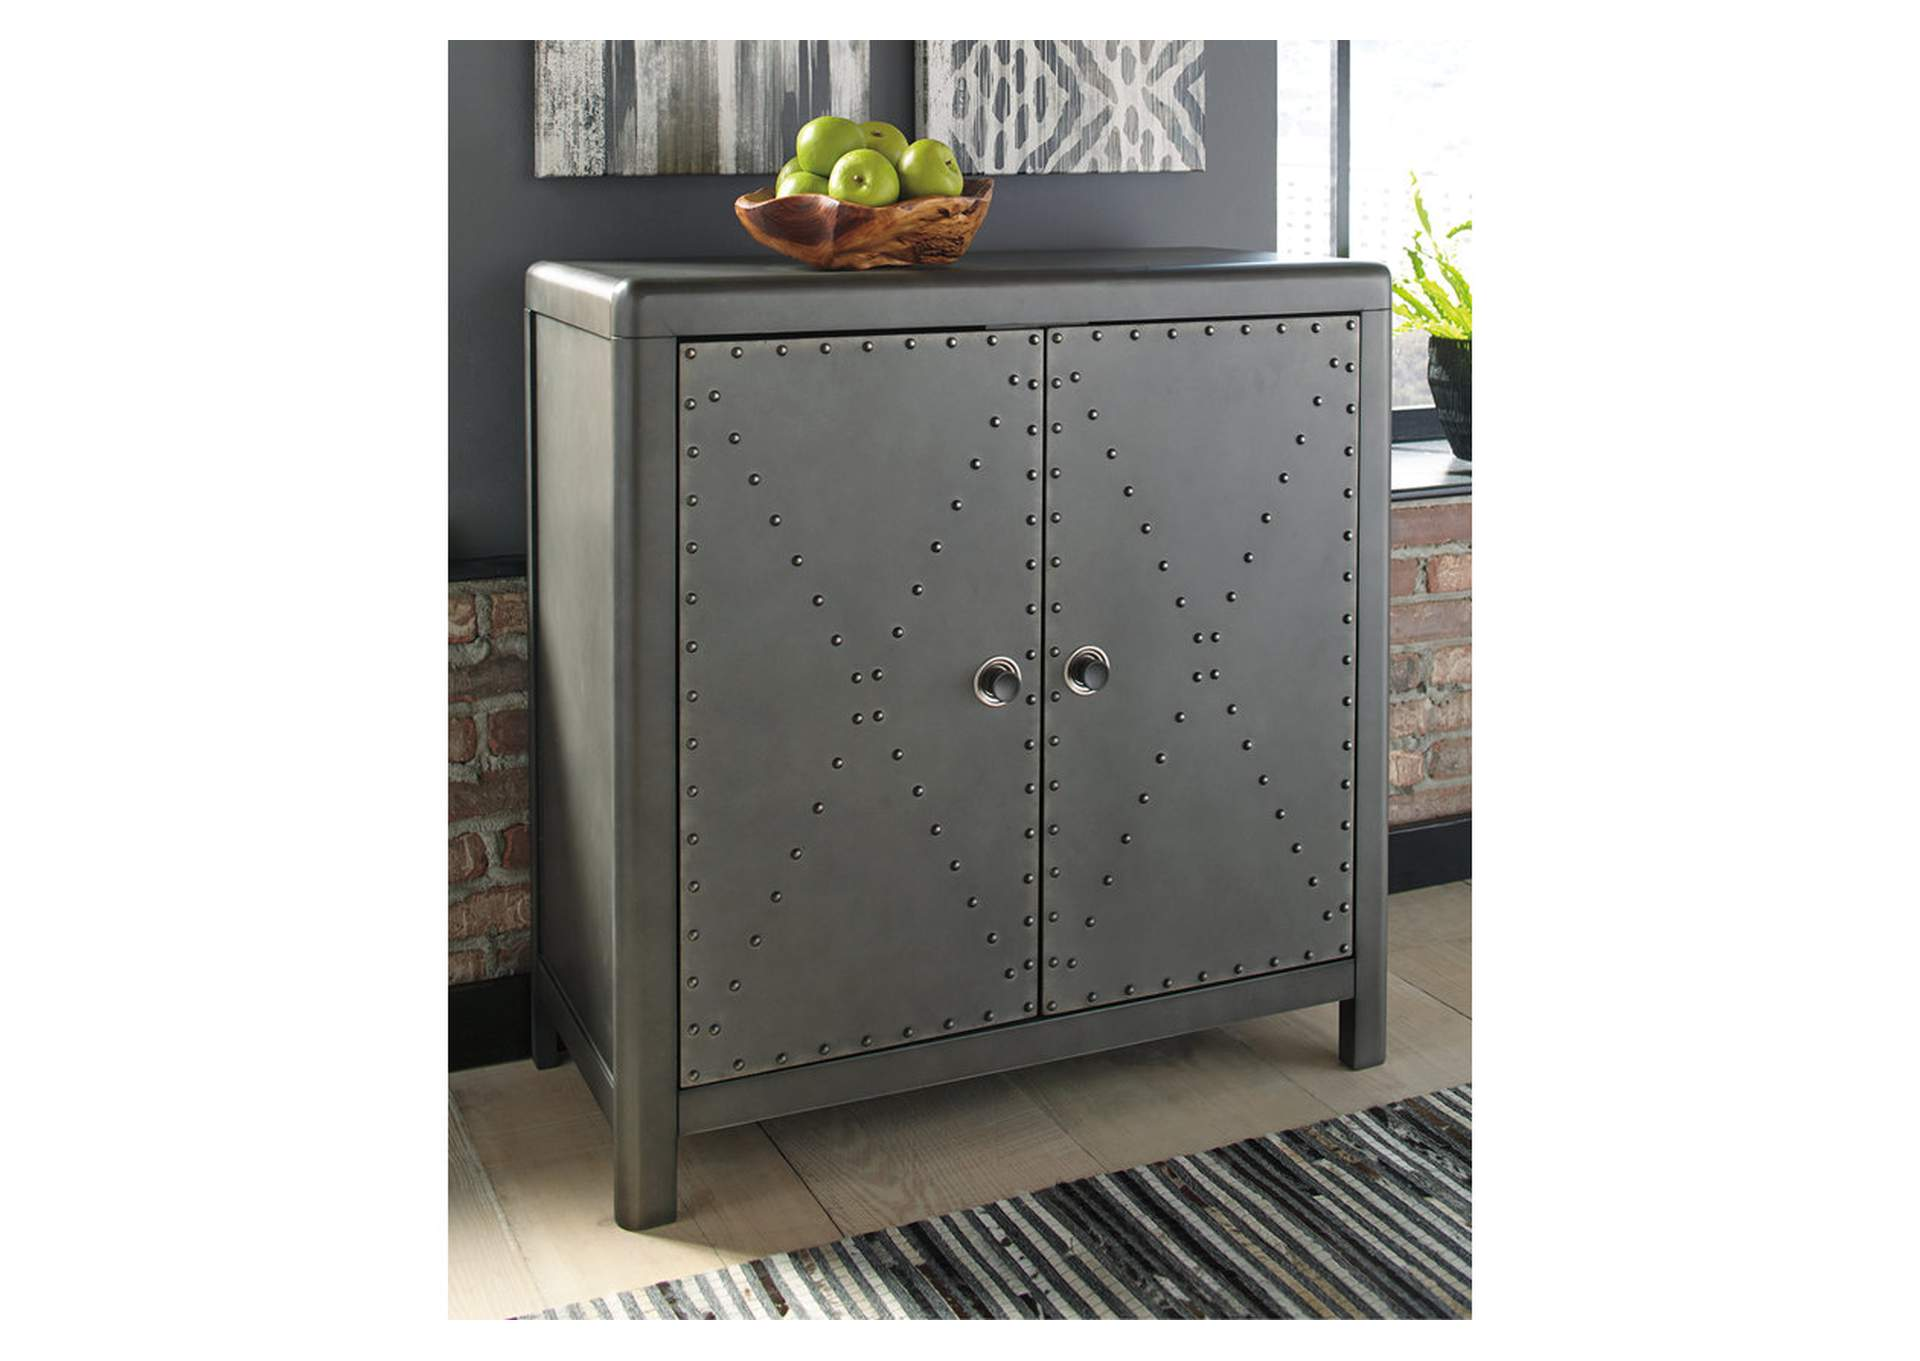 Rock Ridge Aged Steel Door Accent Cabinet,Direct To Consumer Express